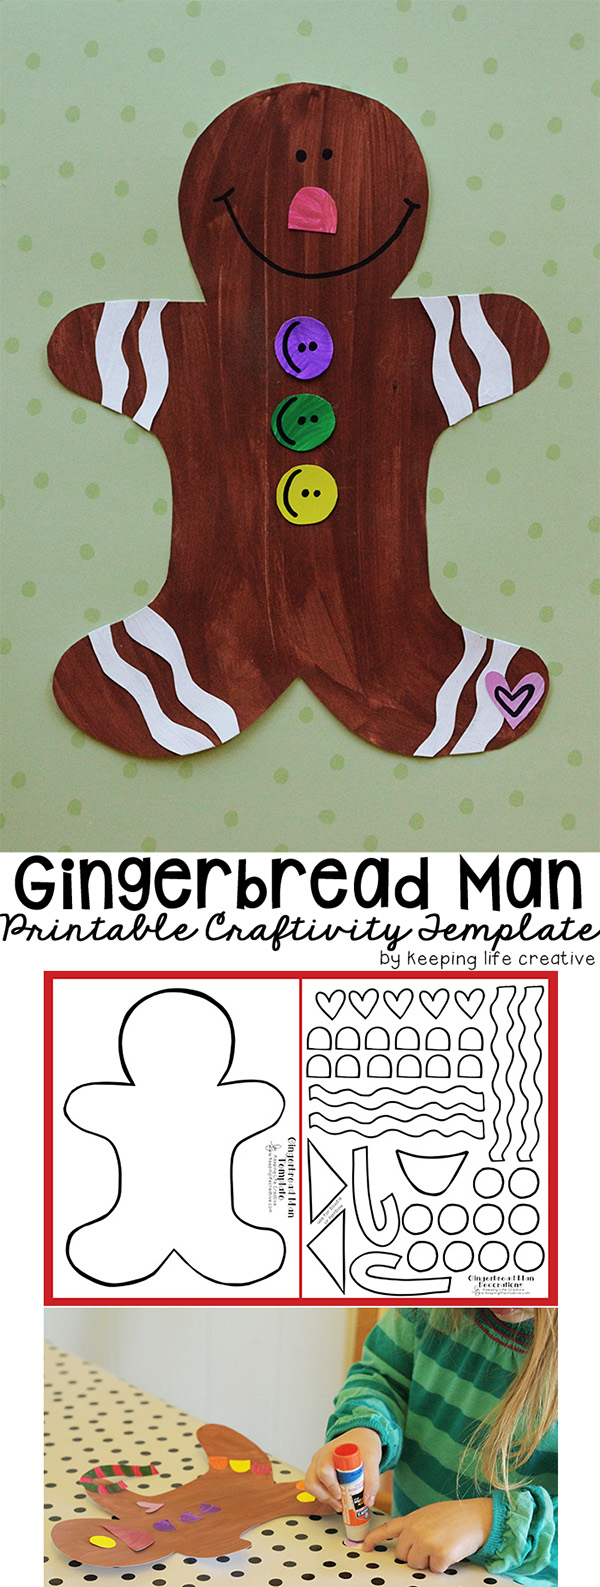 Printable gingerbread man craft keeping life creative for Craft projects for guys